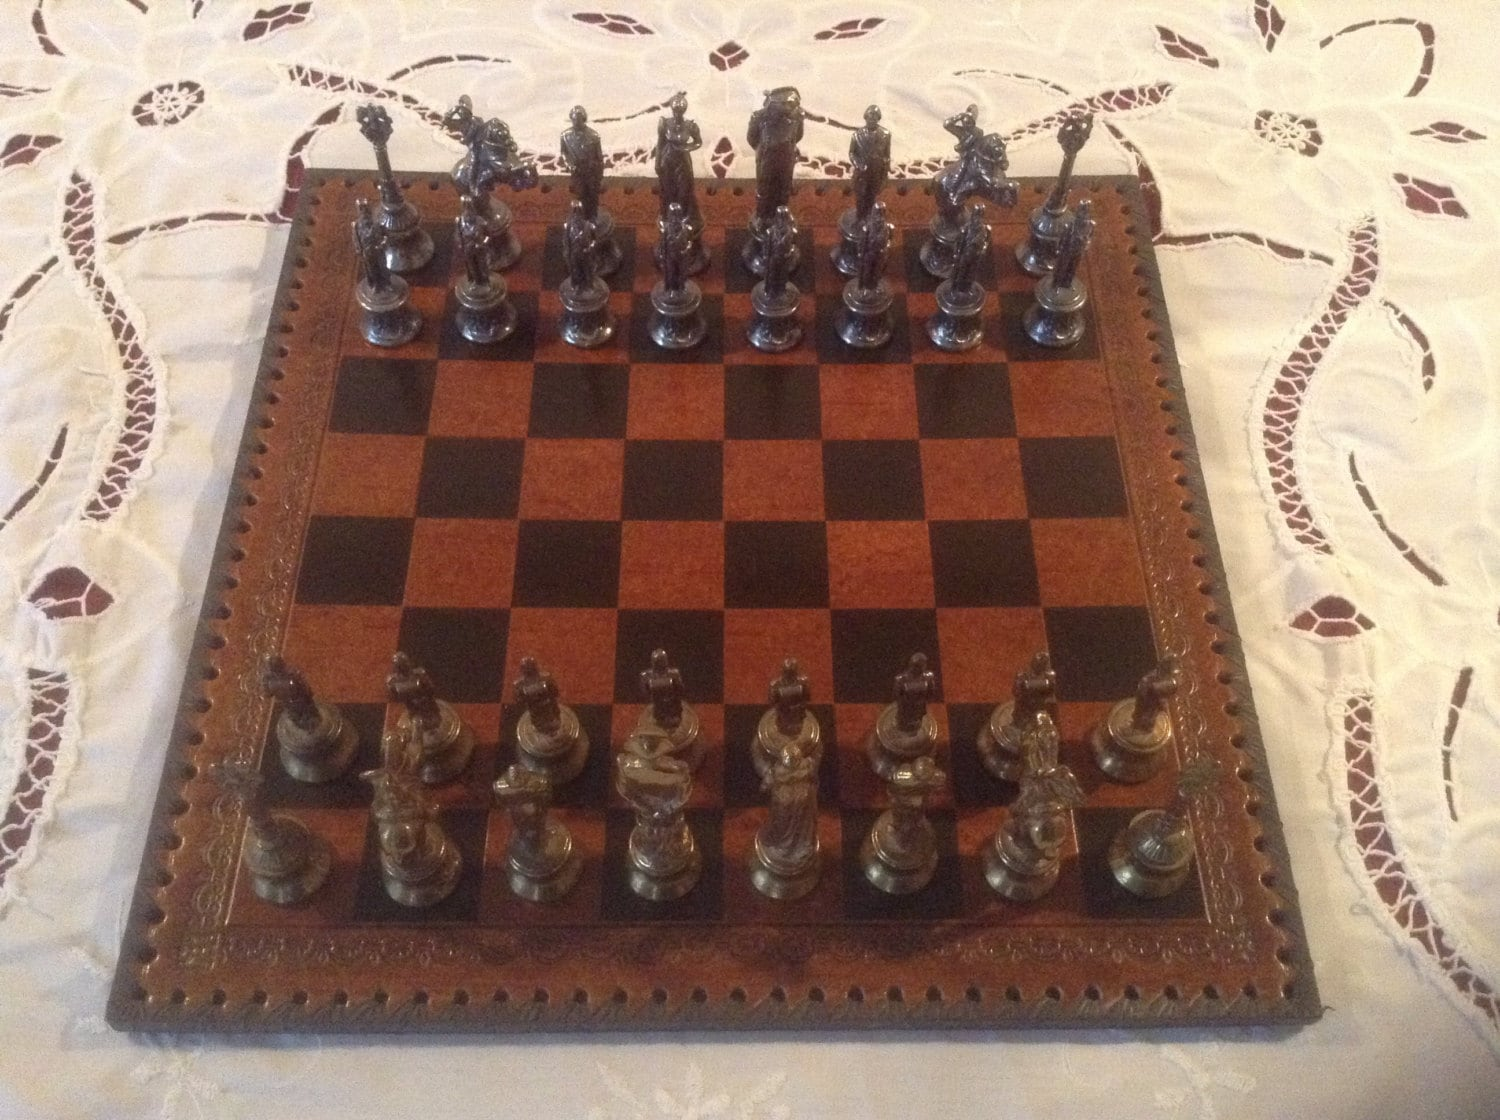 Stunning vintage chess set ornate antique by scottsfrenchtreasure - Ornate chess sets ...